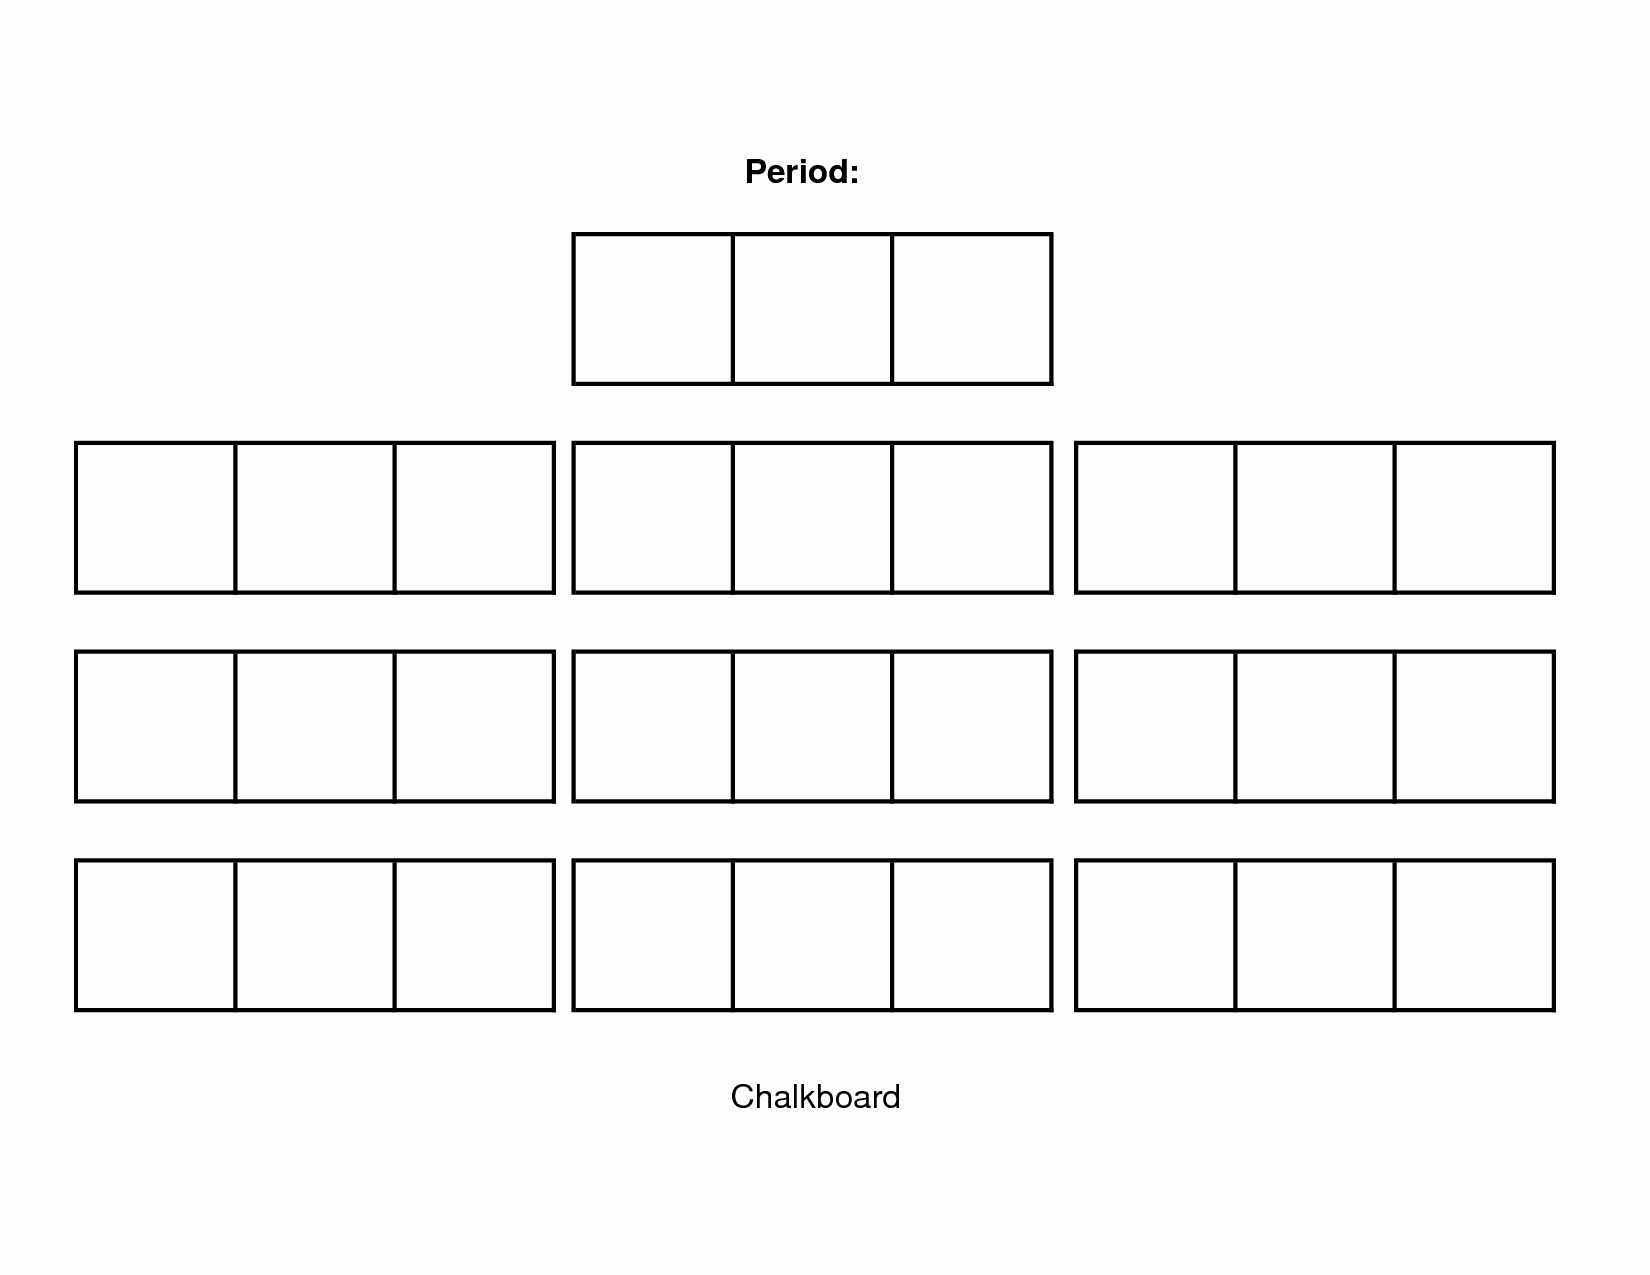 Seating Charts Templates for Classrooms Inspirational Classroom Seating Chart Template